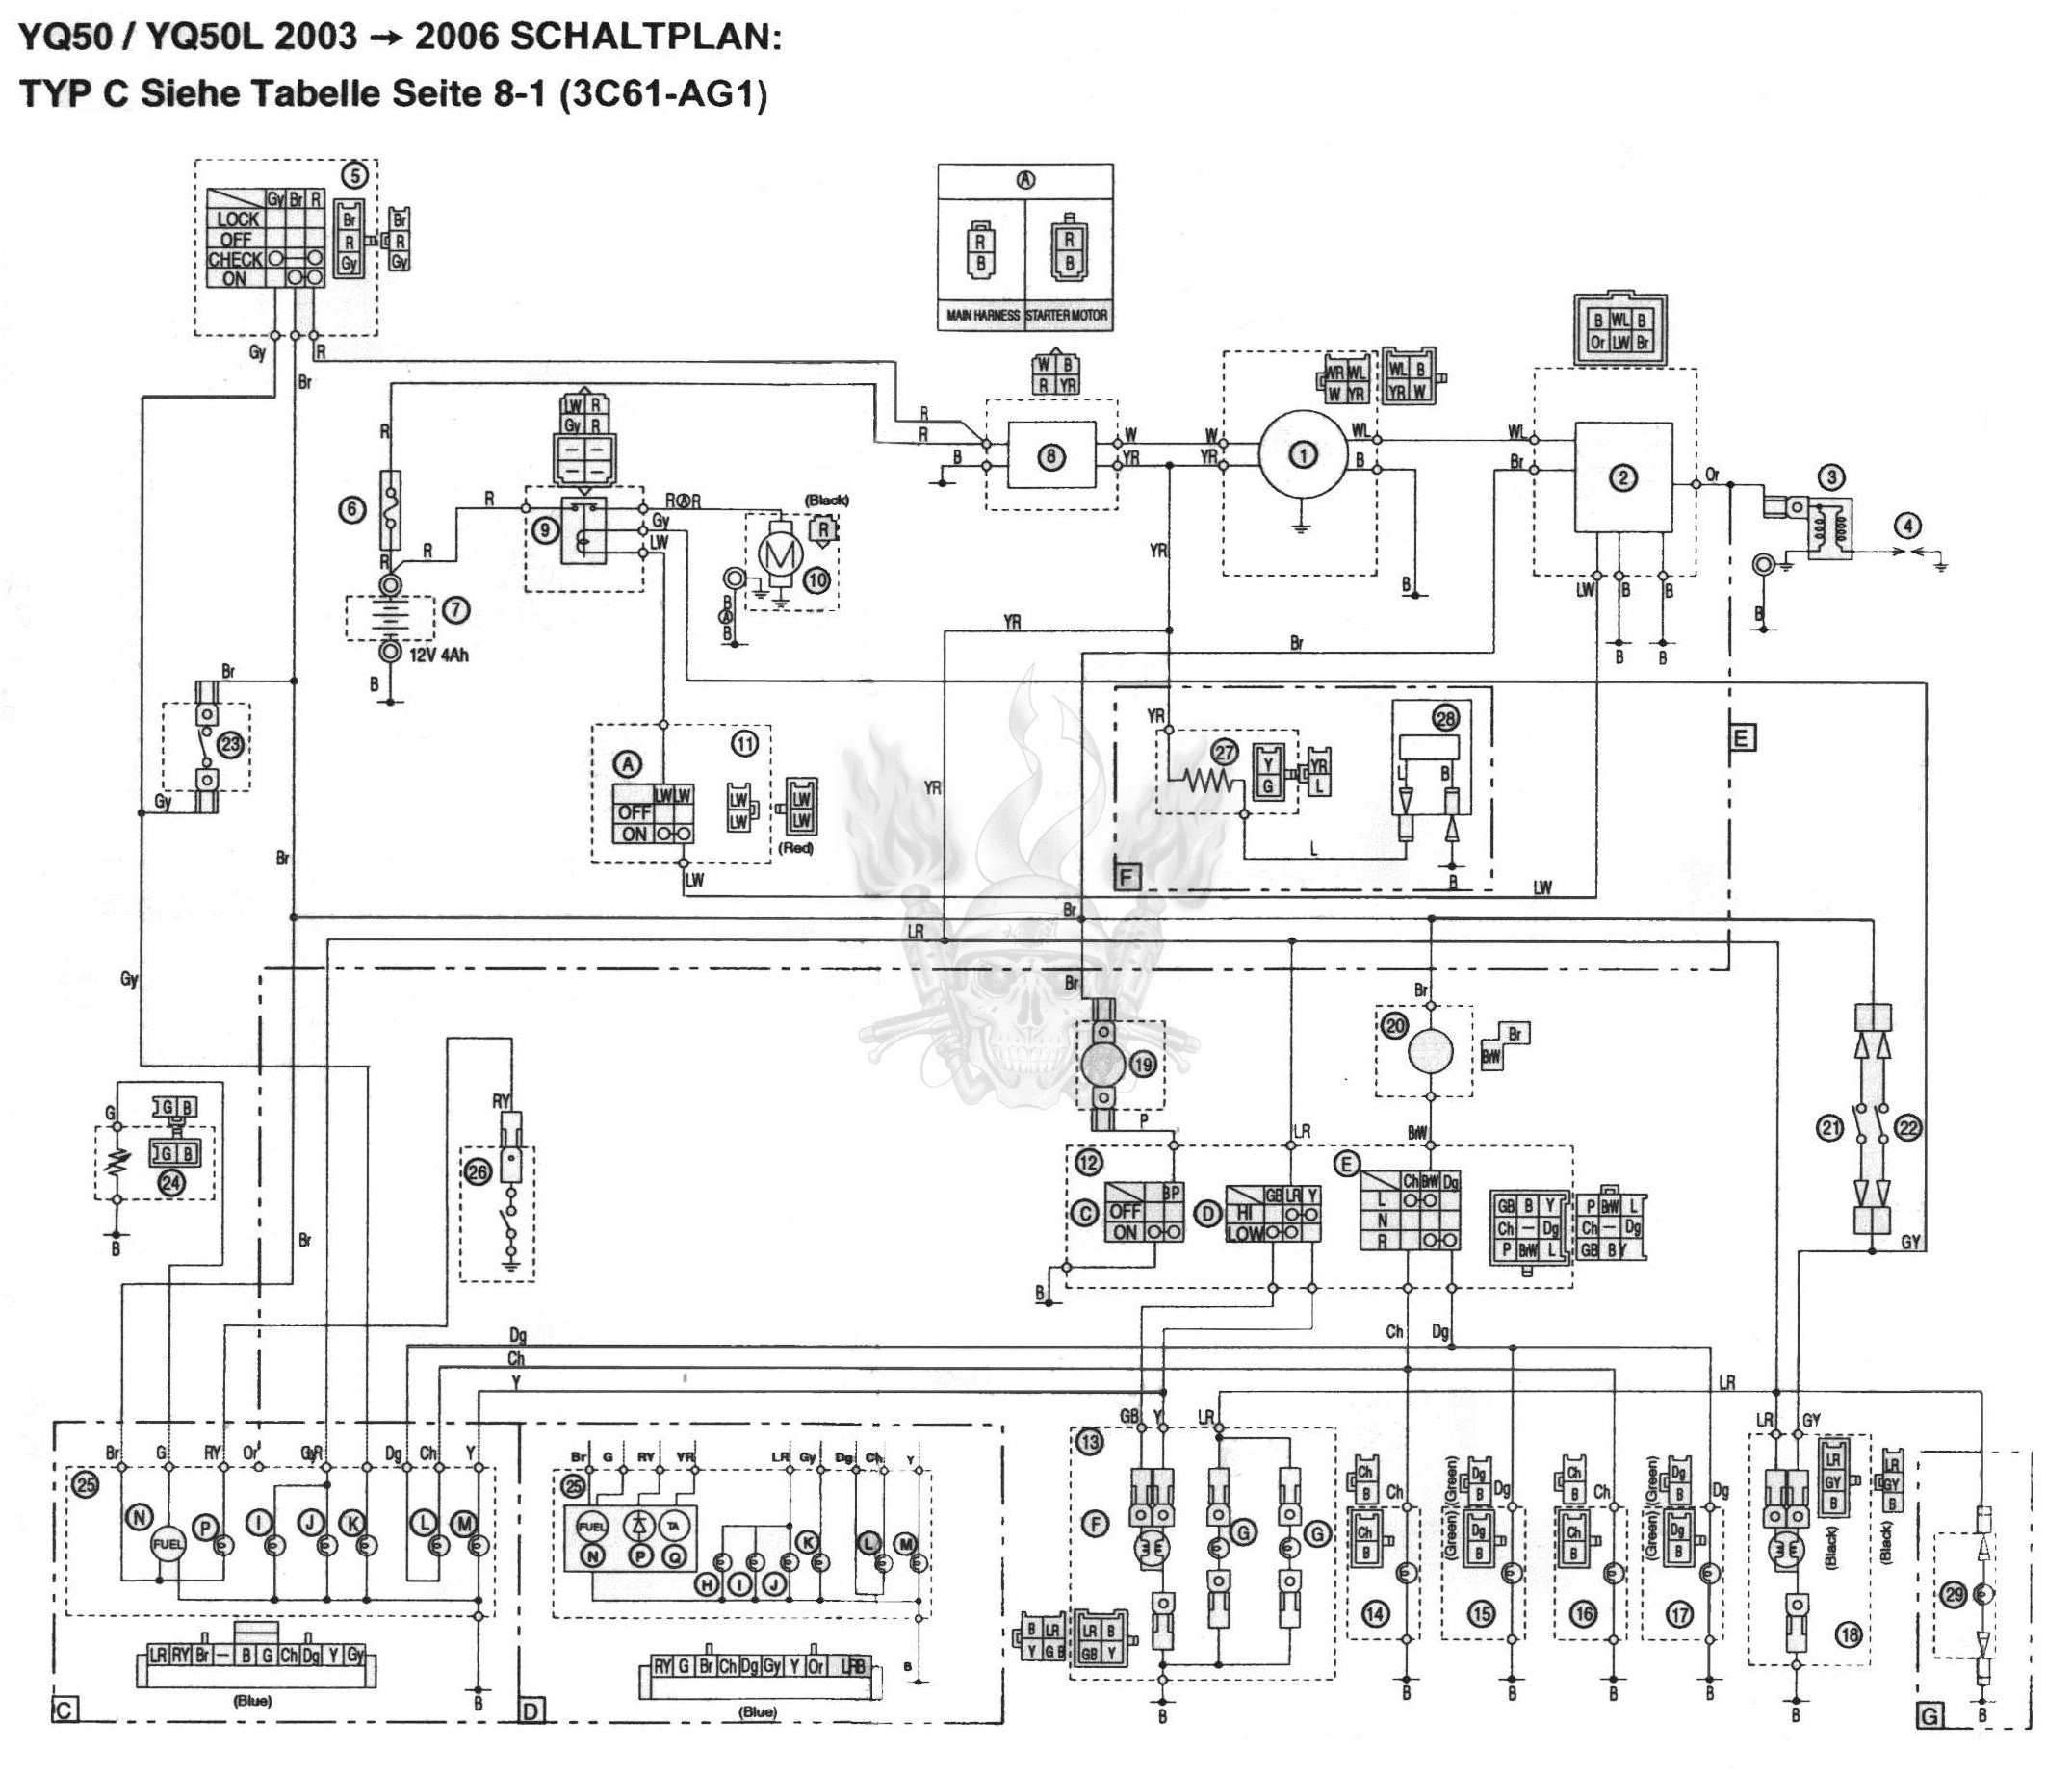 1987 Yamaha Warrior 350 Wiring Diagram Wire Data Schema 1996 Wolverine Engine Schematics Imageresizertool Com 87 2001